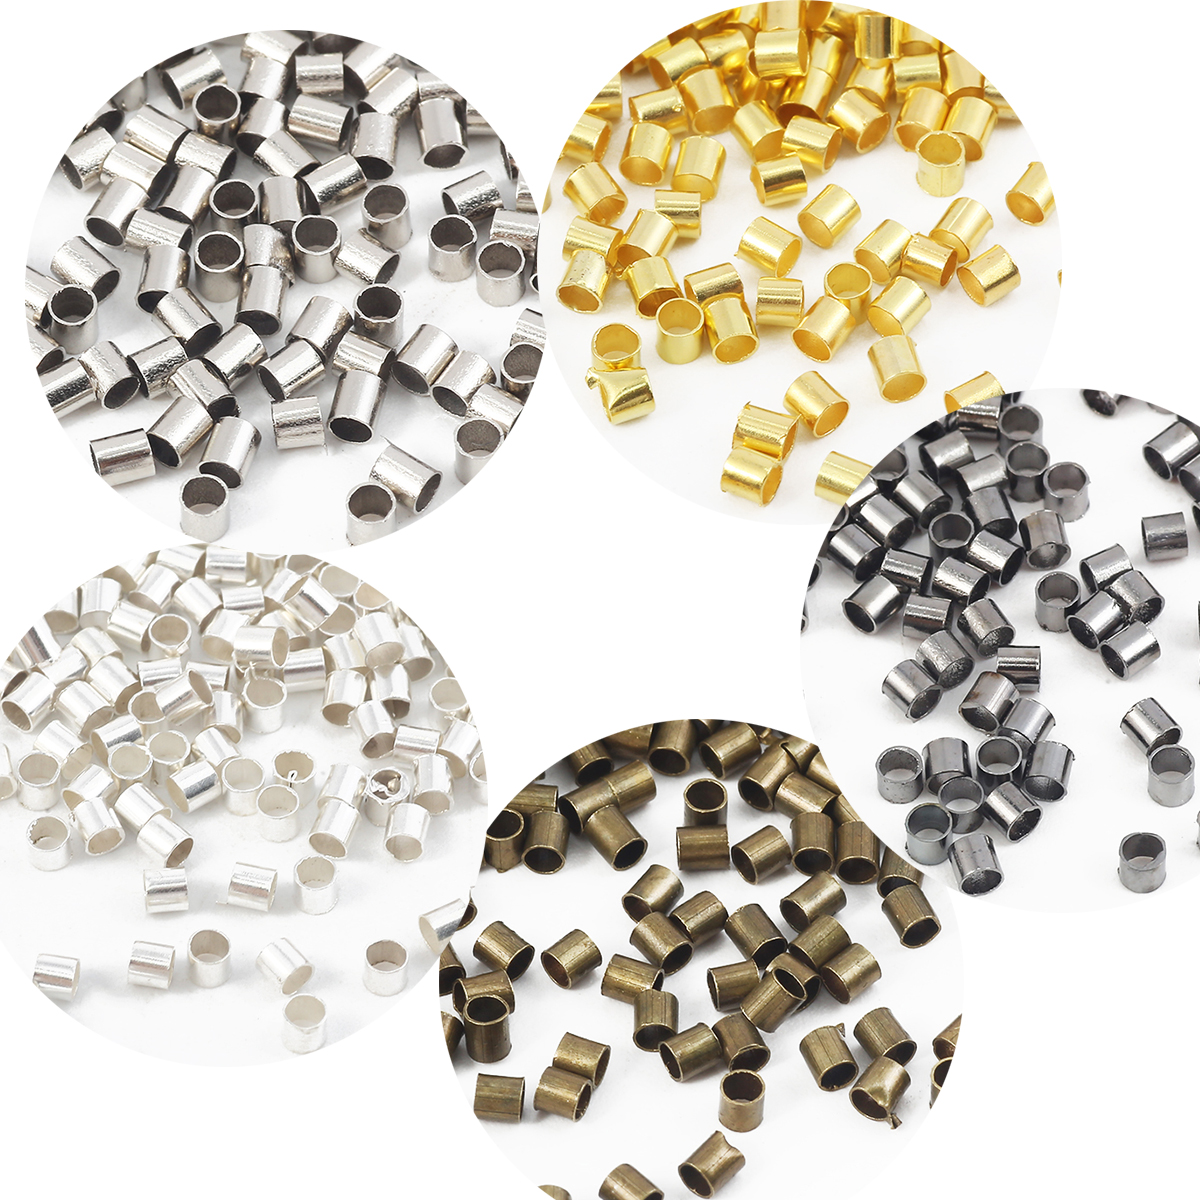 1500Pcs 2mm Brass Tube Crimp Beads Cord End Caps for Jewelry Making 6 Colors New